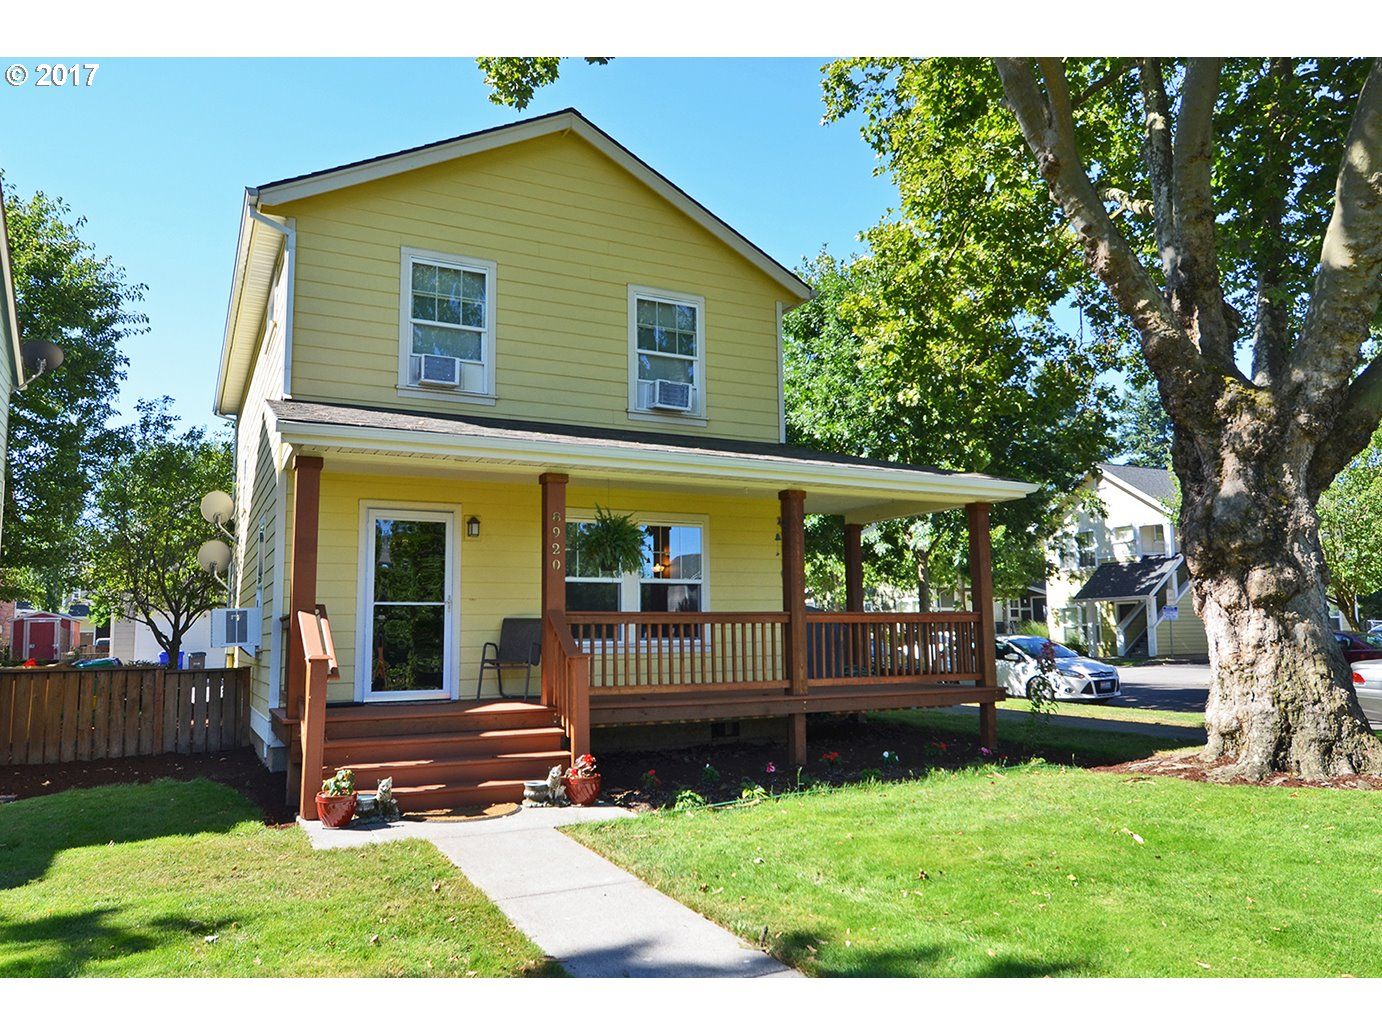 Price Reduced! Enjoy relaxing on the front wrap around porch while enjoying the views of the courtyard! Bamboo floors on the main level. Gas fireplace. Large kitchen.  Full bath on the main level.  4 window air conditioning units. Tankless hot water heater.  Parking for 2 vehicles. Walk to parks and school. Close to the boys and girls club.